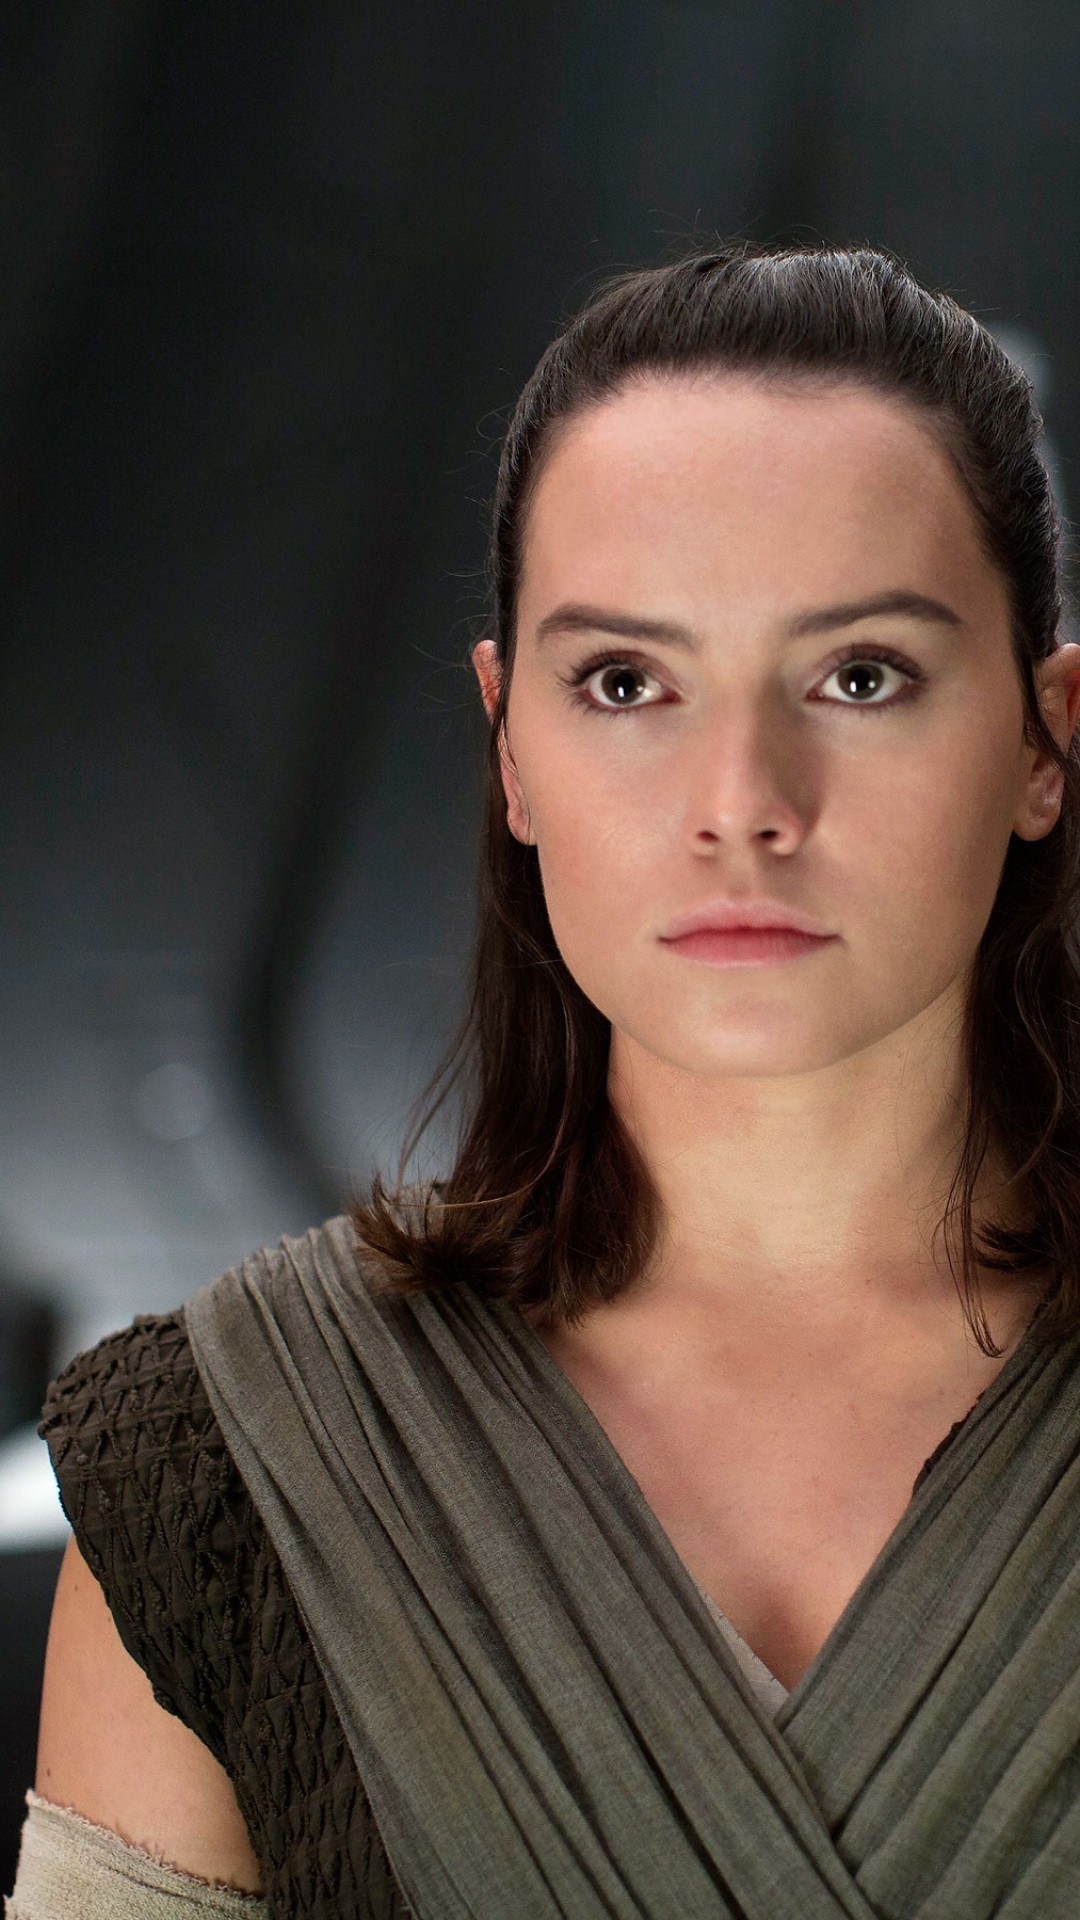 Wallpaper Rey Daisy Ridley Star Wars The Last Jedi Star Wars The